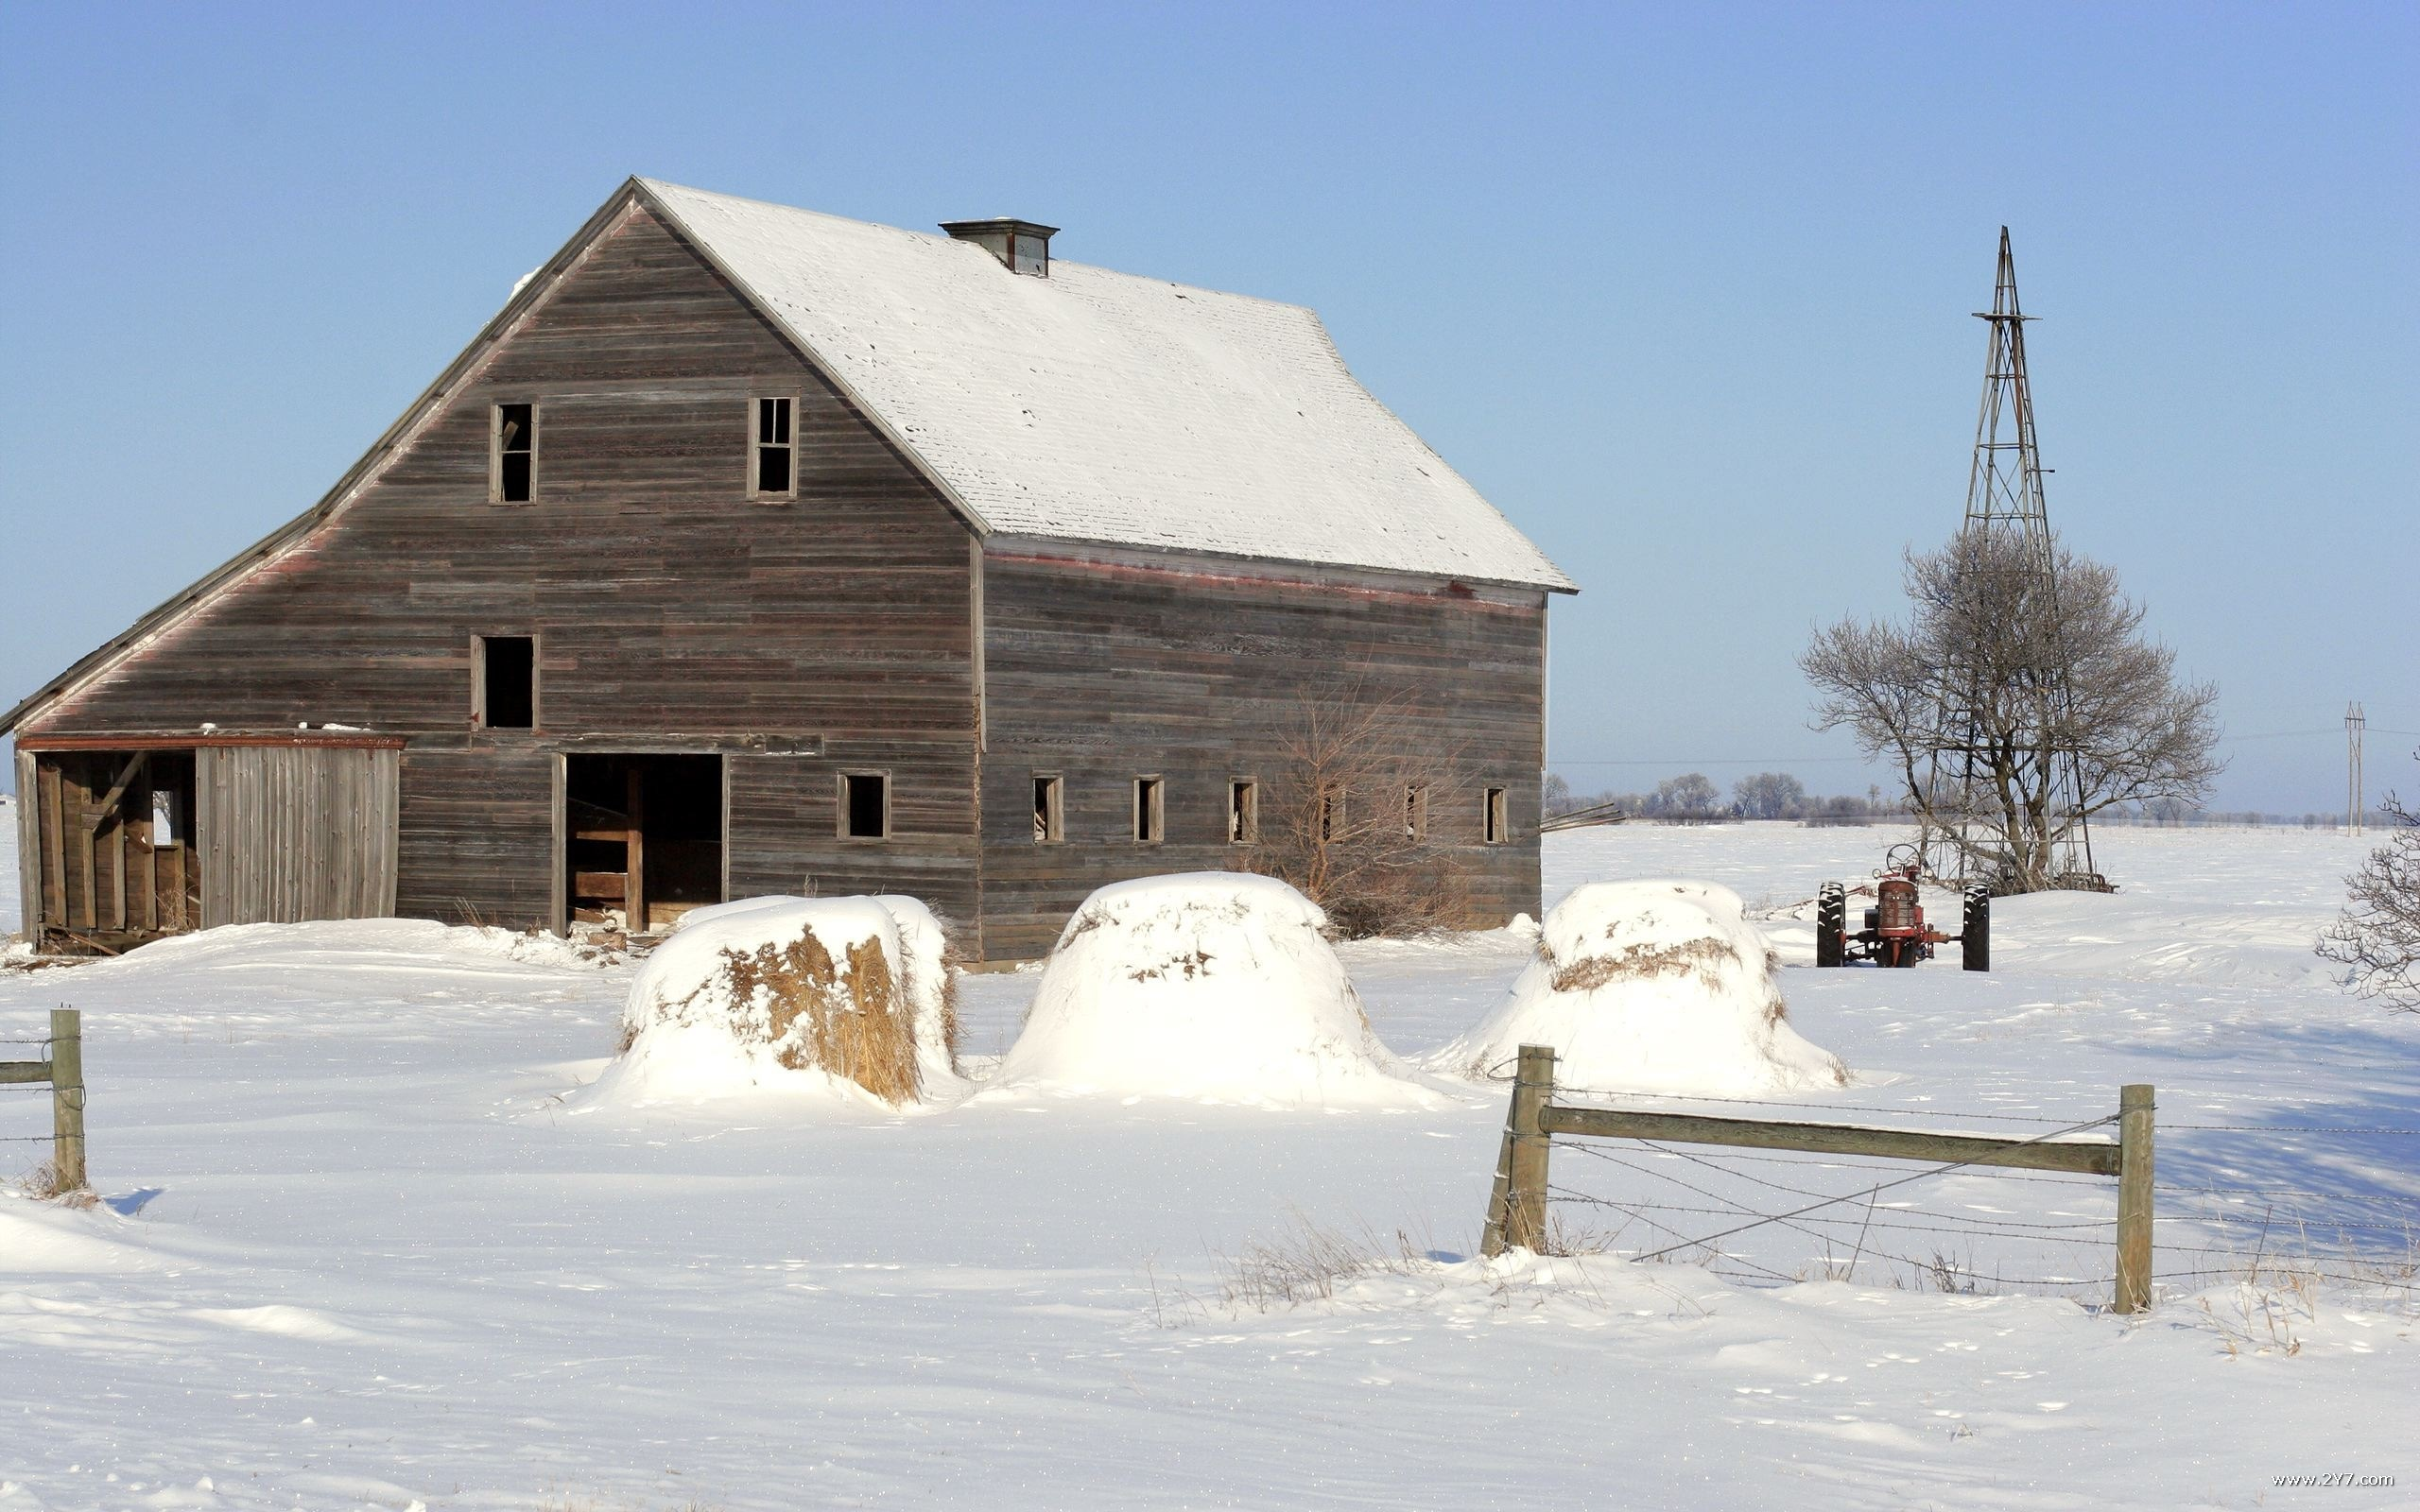 Snow Covered Barn Wallpapers Snow Covered Barn Myspace Backgrounds 2560x1600